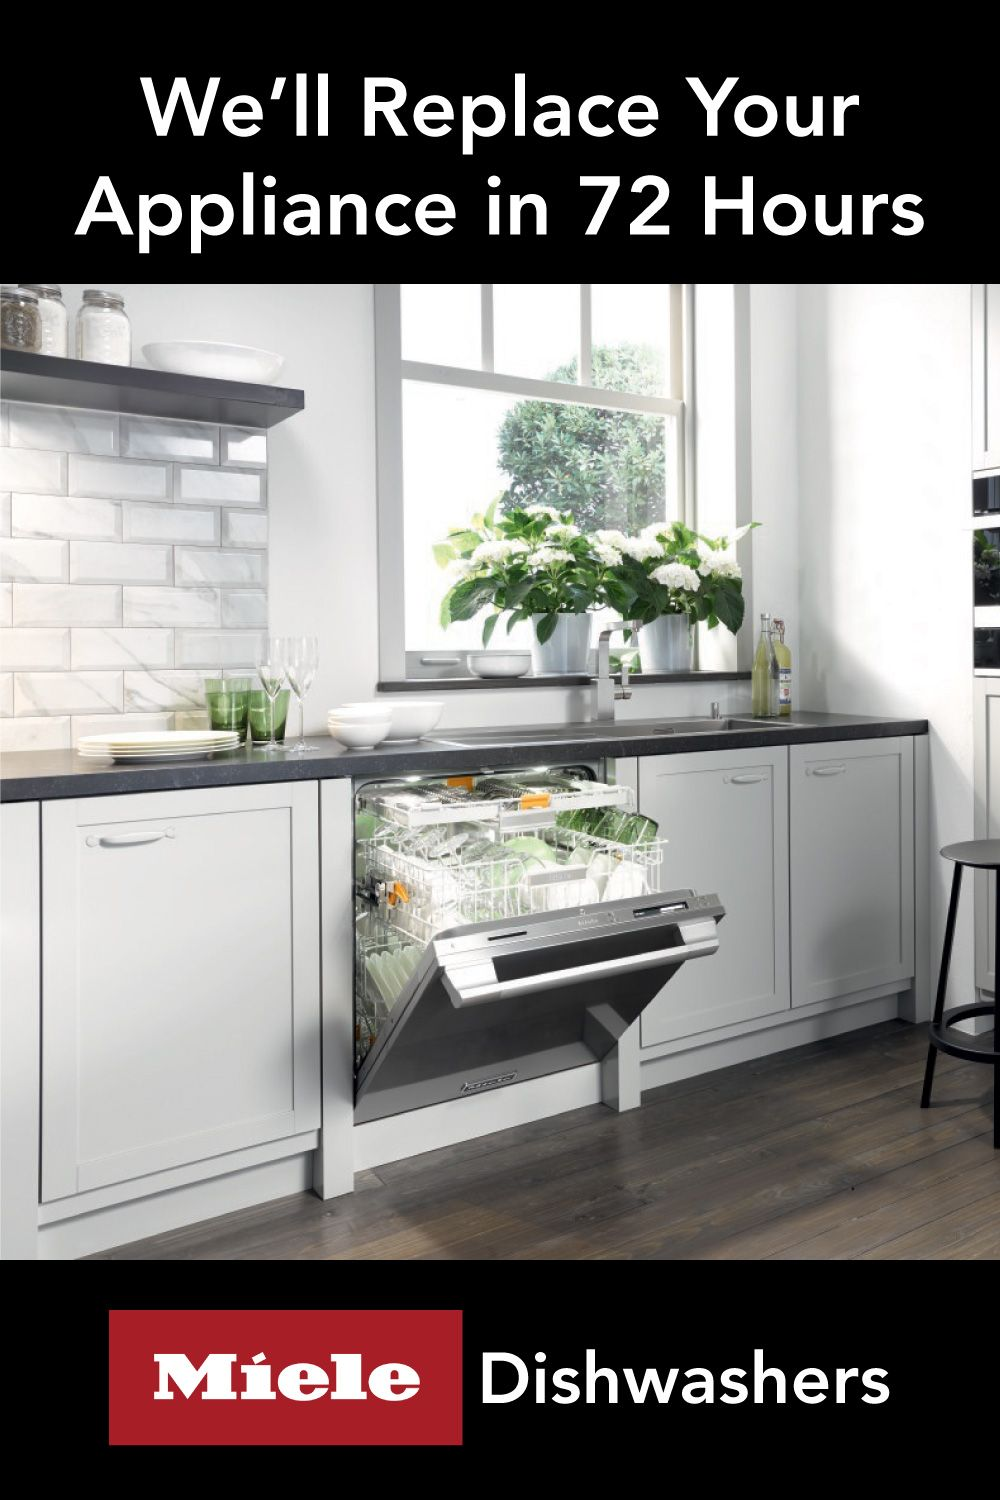 Miele Dishwashers From Pirch In 2020 Interior Design Kitchen Miele Dishwasher Kitchen Interior